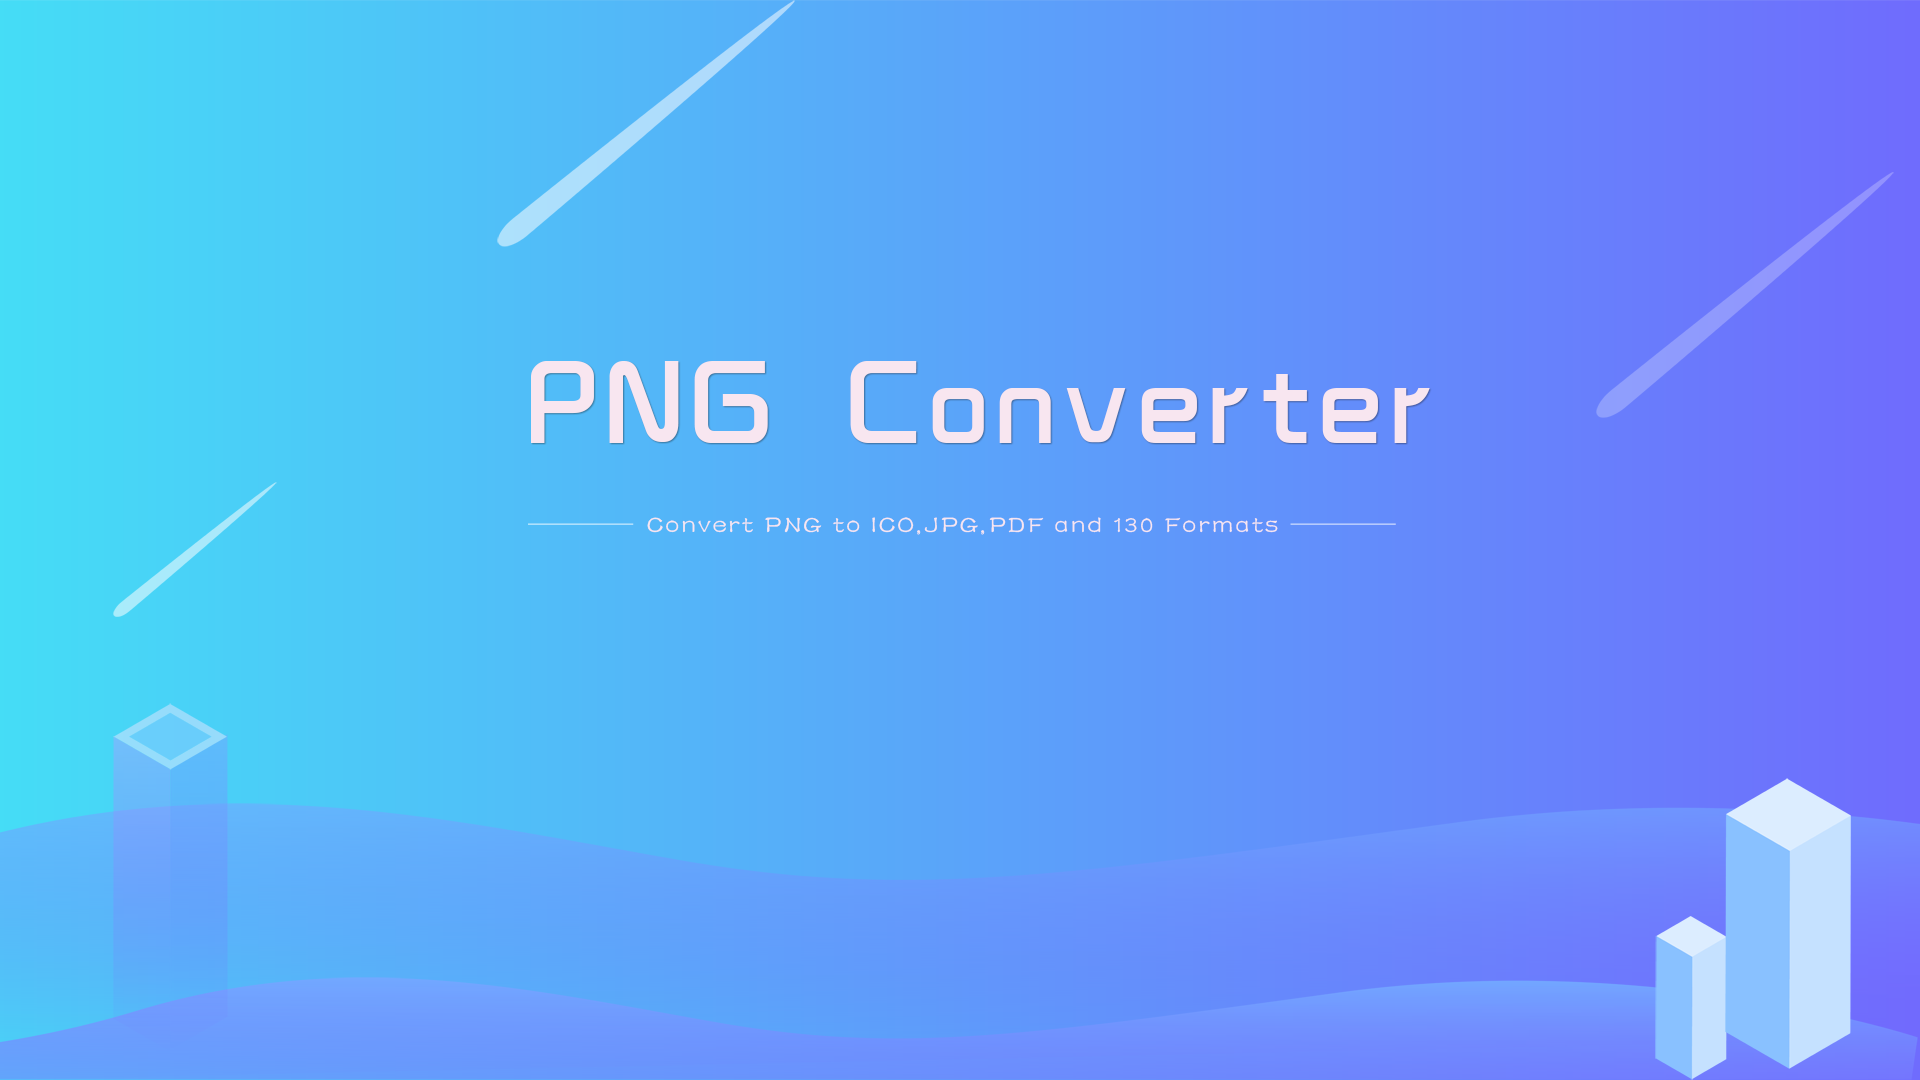 Convert Png To Ico Convert Png To Jpg And 130 Formats